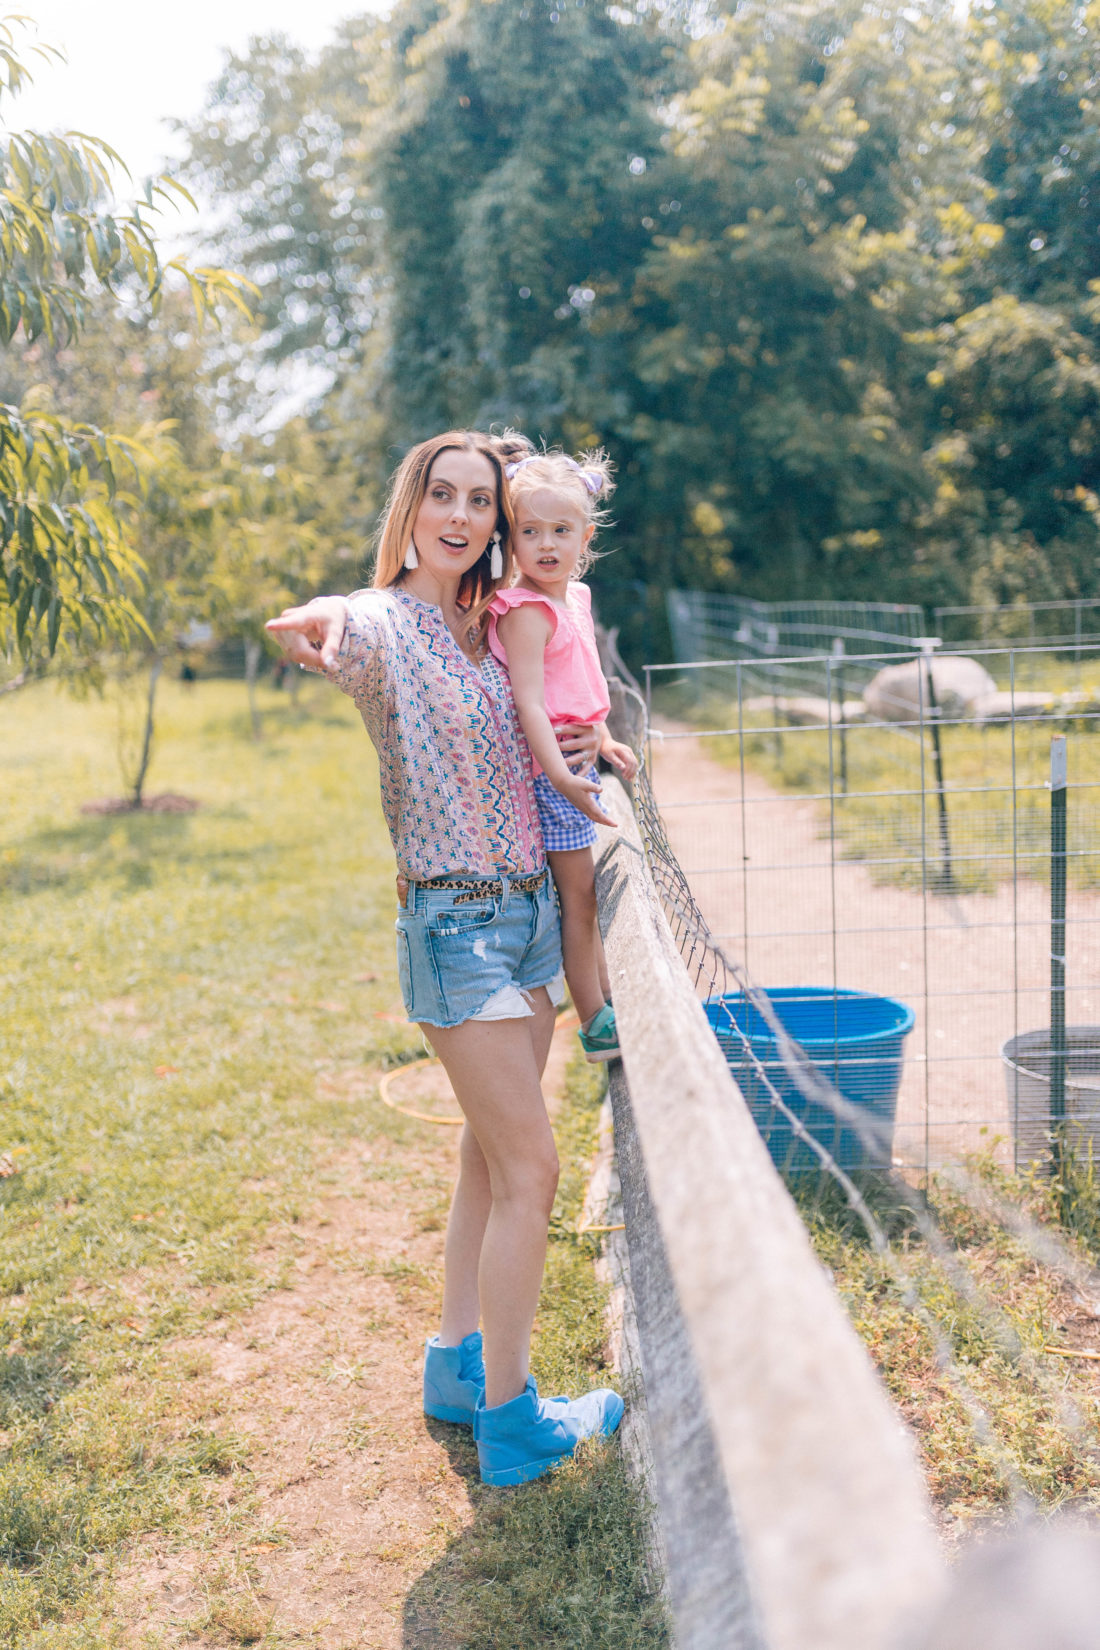 Eva Amurri Martino stands by a fence with four year old daughter Marlowe and peers in to an alpaca pen at a local connecticut farm